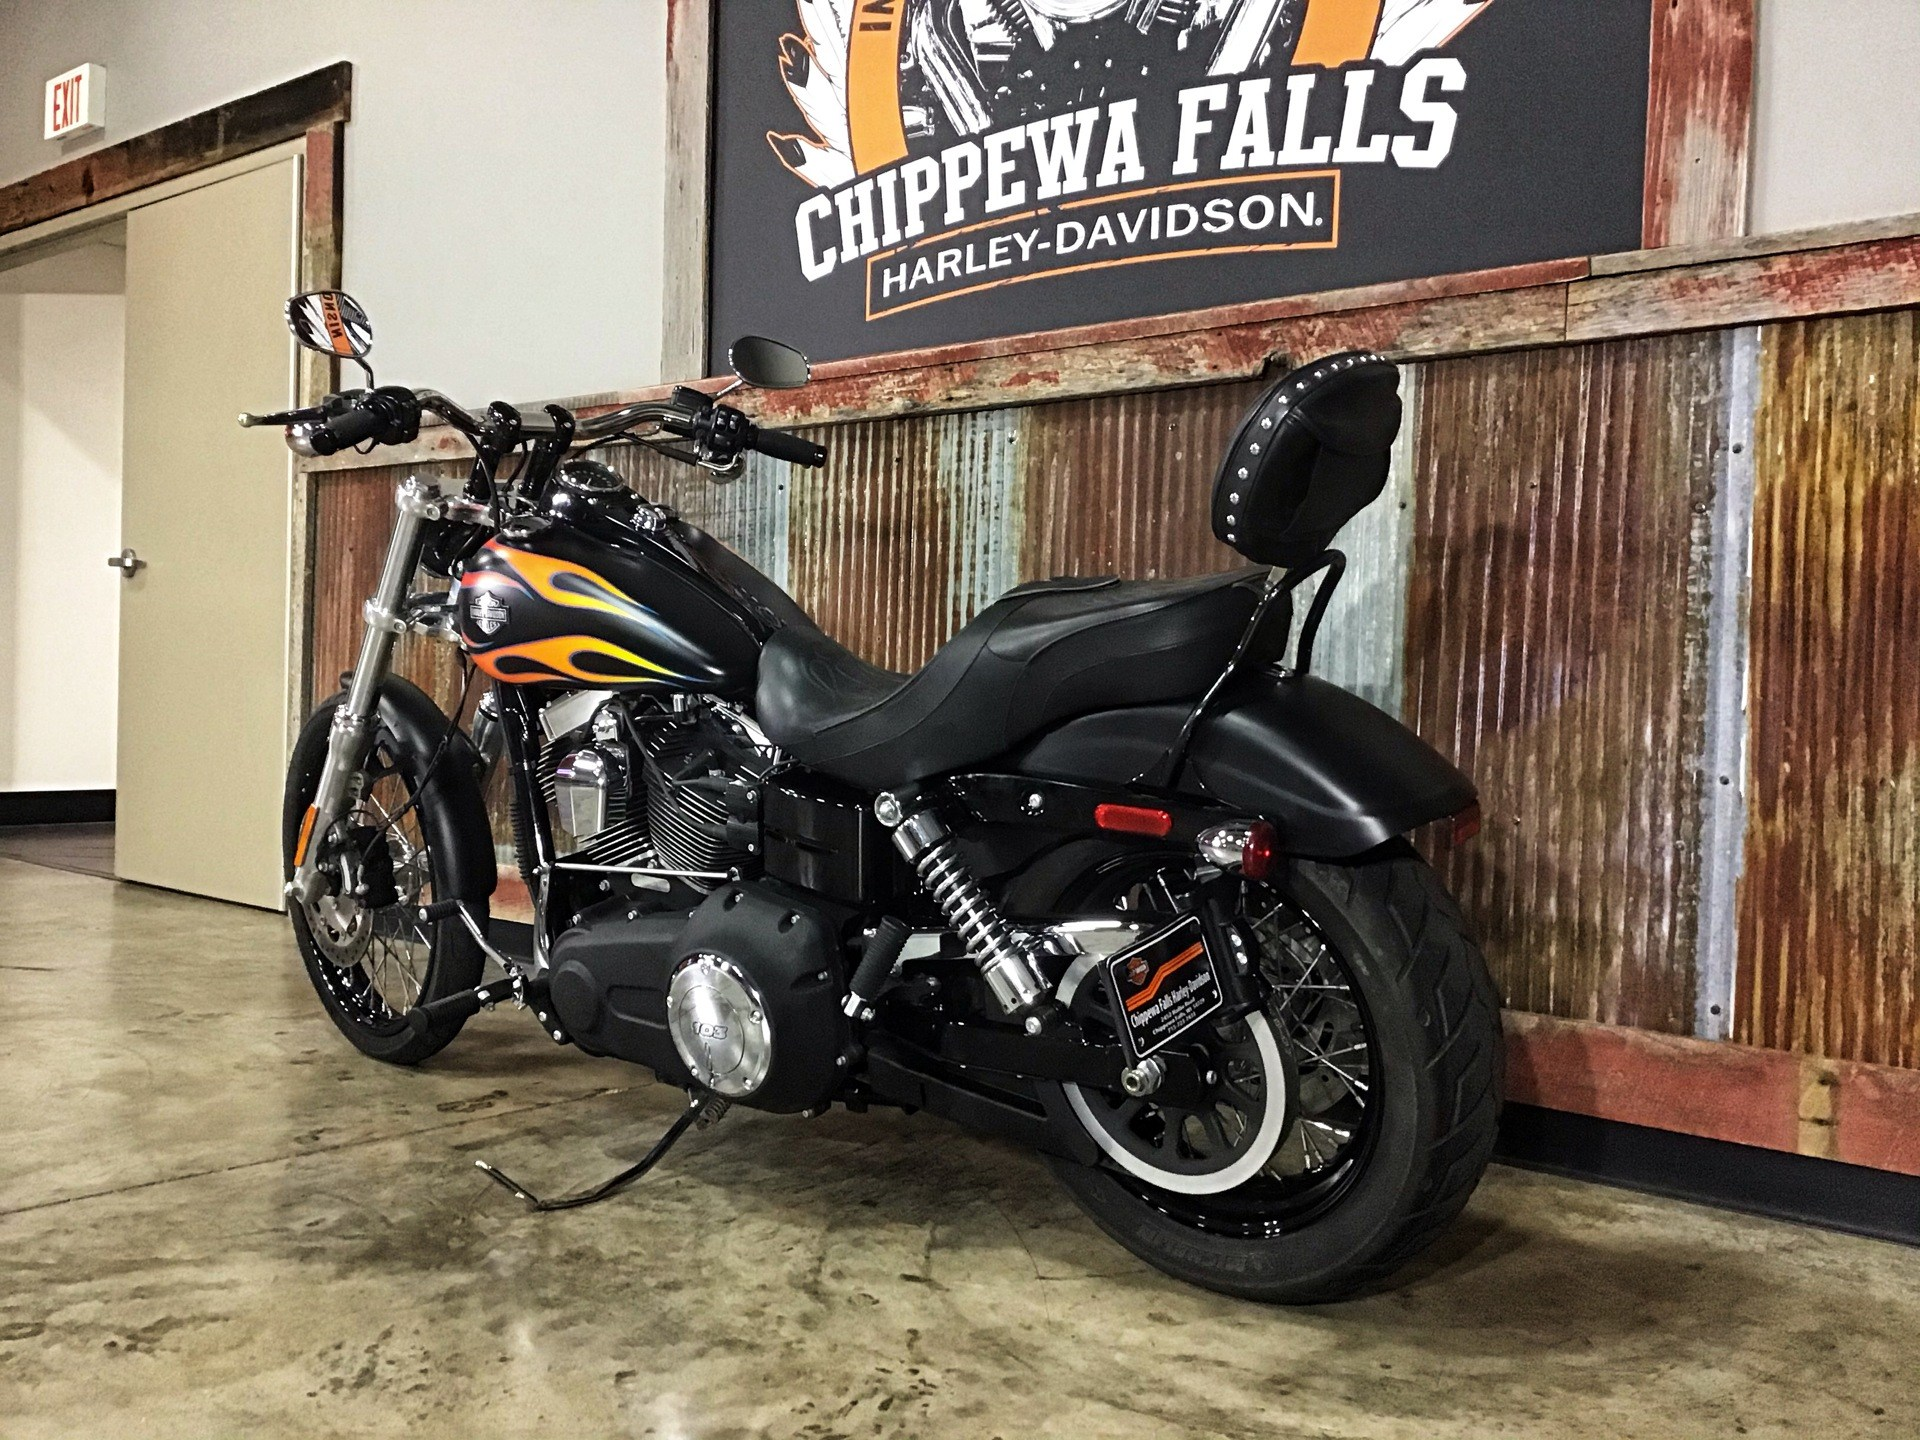 2015 Harley-Davidson Wide Glide® in Chippewa Falls, Wisconsin - Photo 13